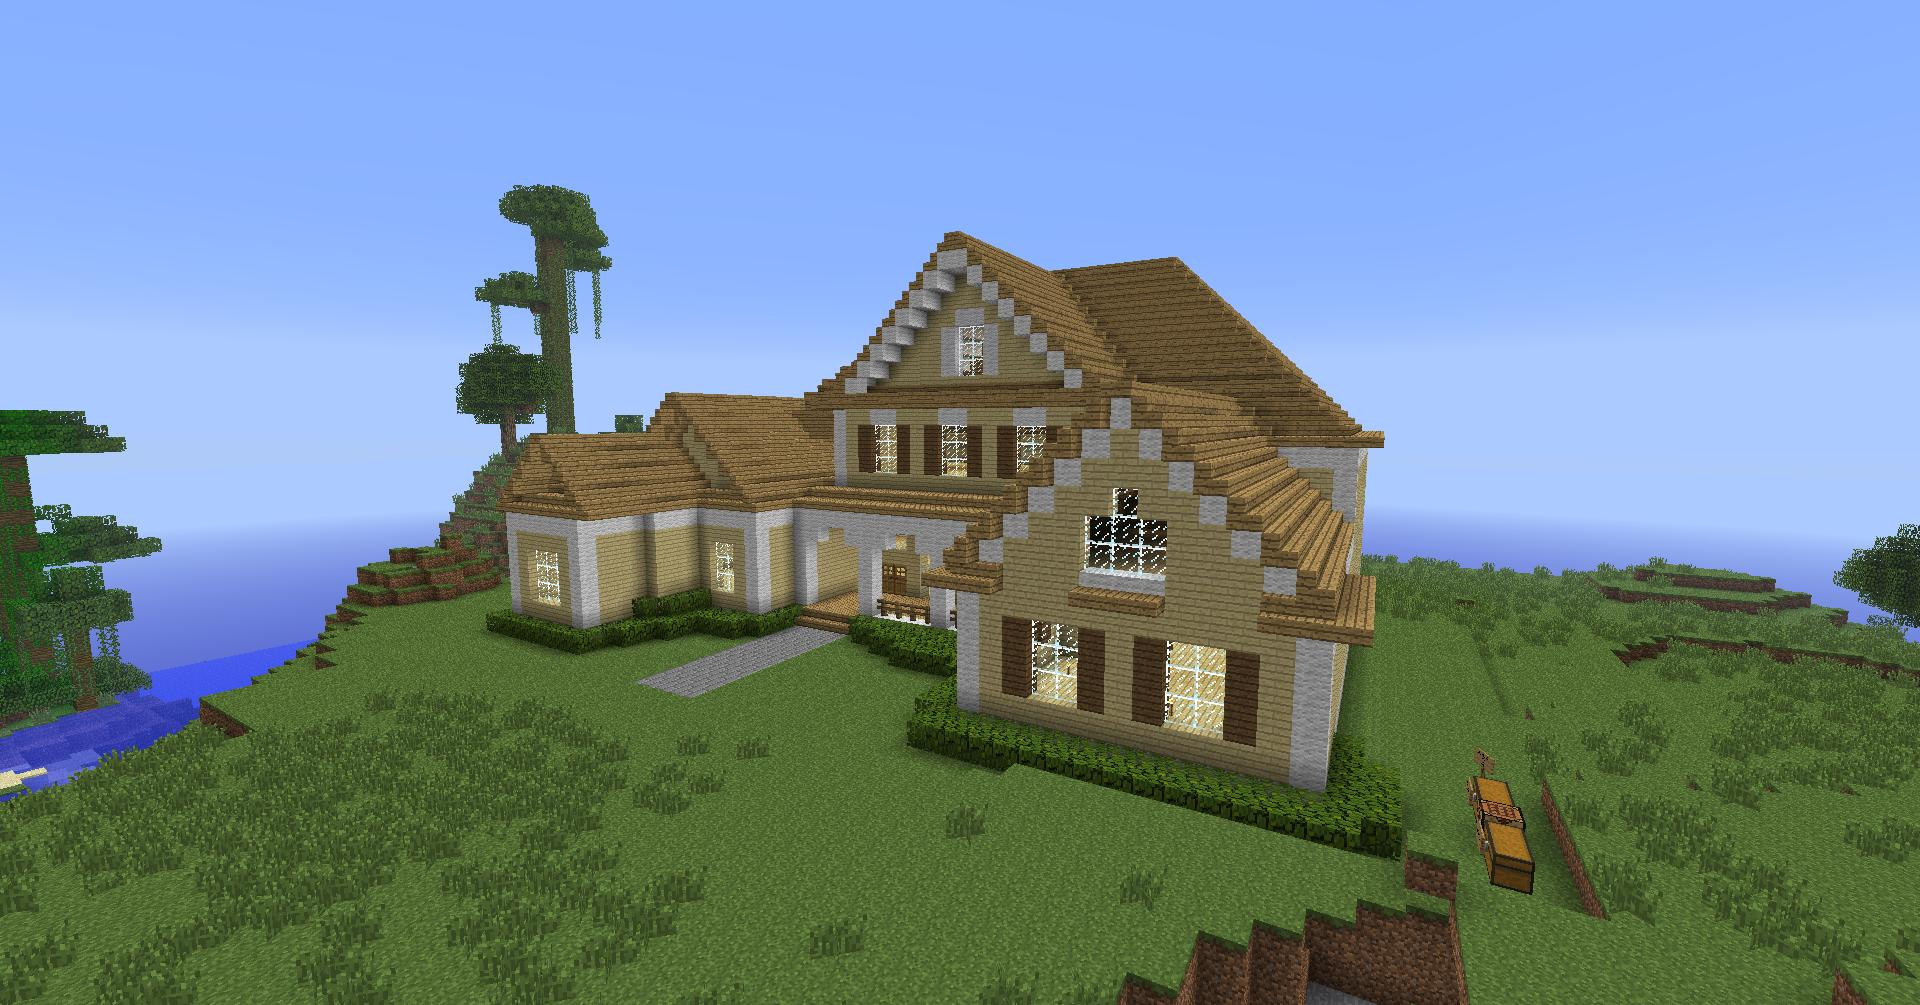 Minecraft House Roof Make a Roof in Minecraft